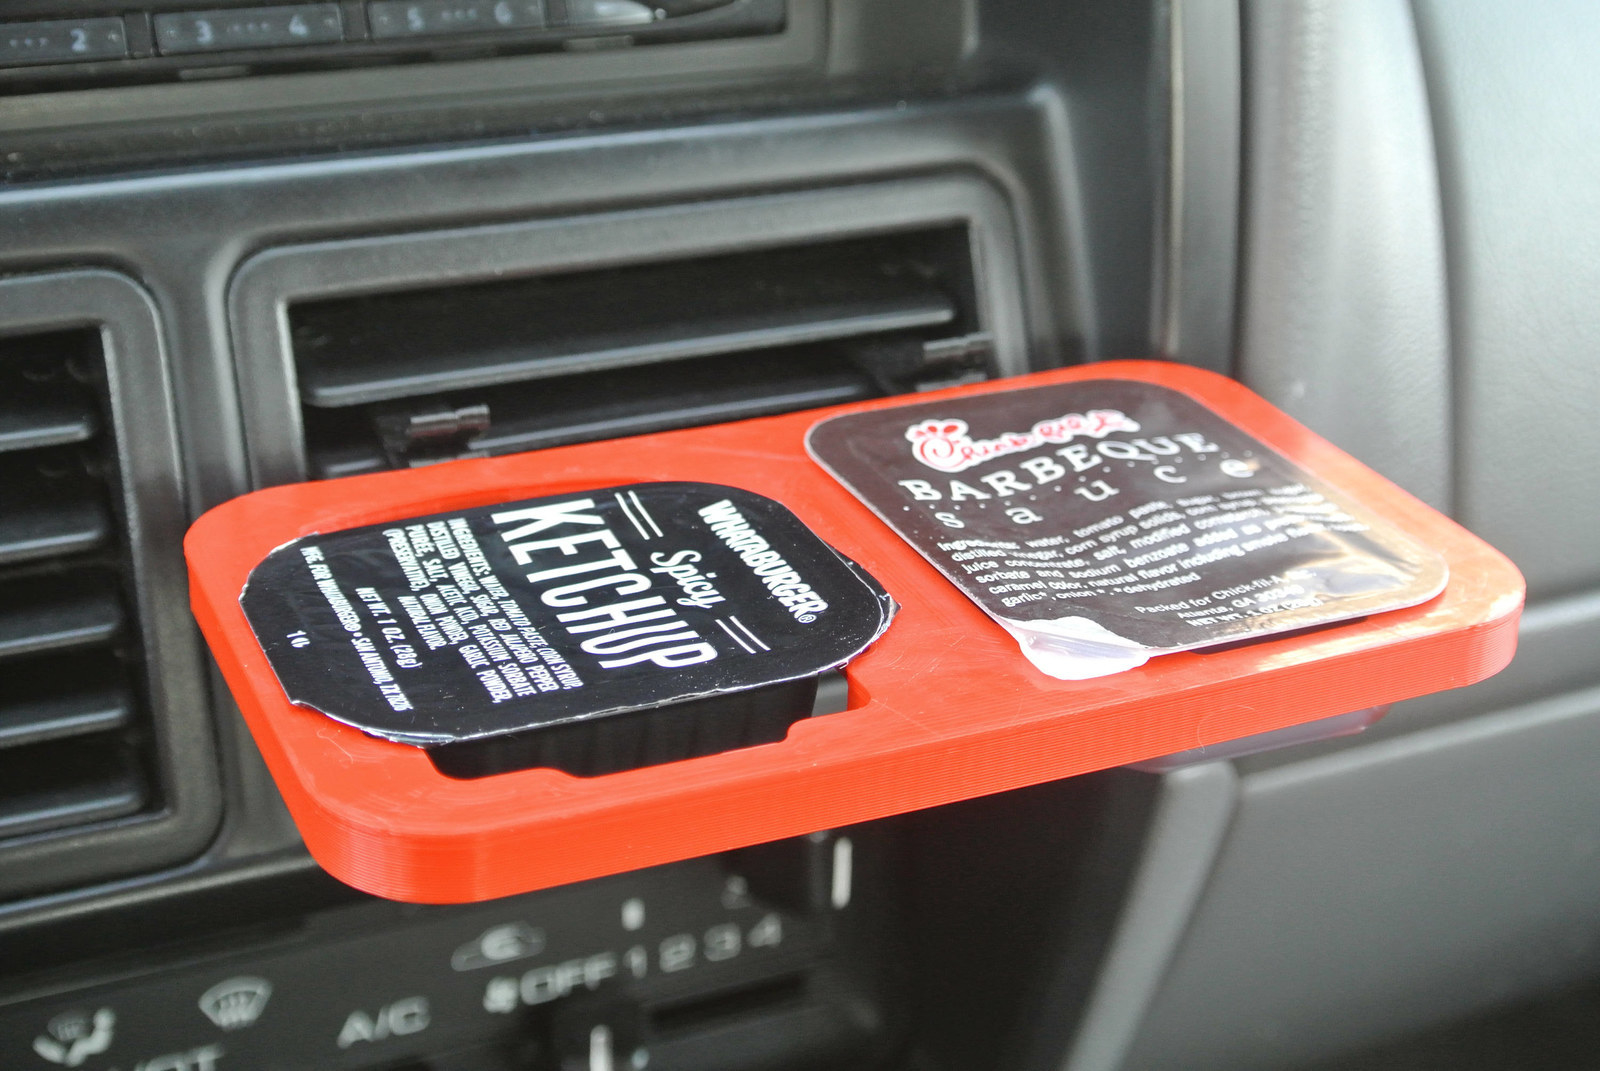 The holder in a car; it holds two ketchups, one from Whataburger and one from Chick-fil-a, one vertically, one horizontally